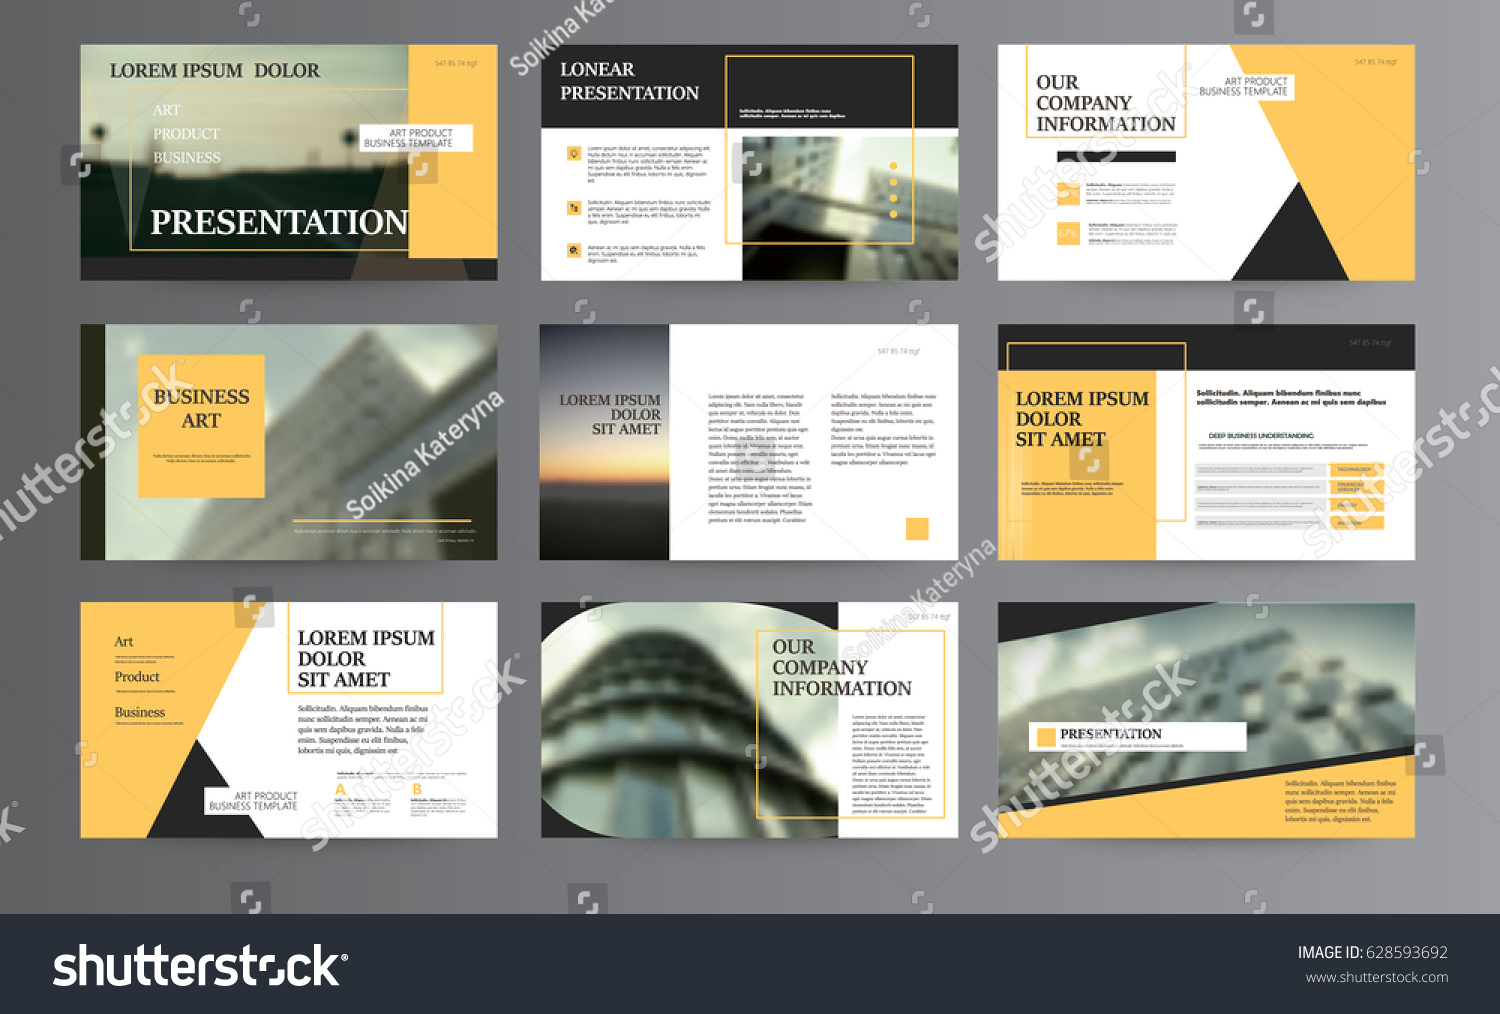 Booklet Presentation Templates From Graphicriver